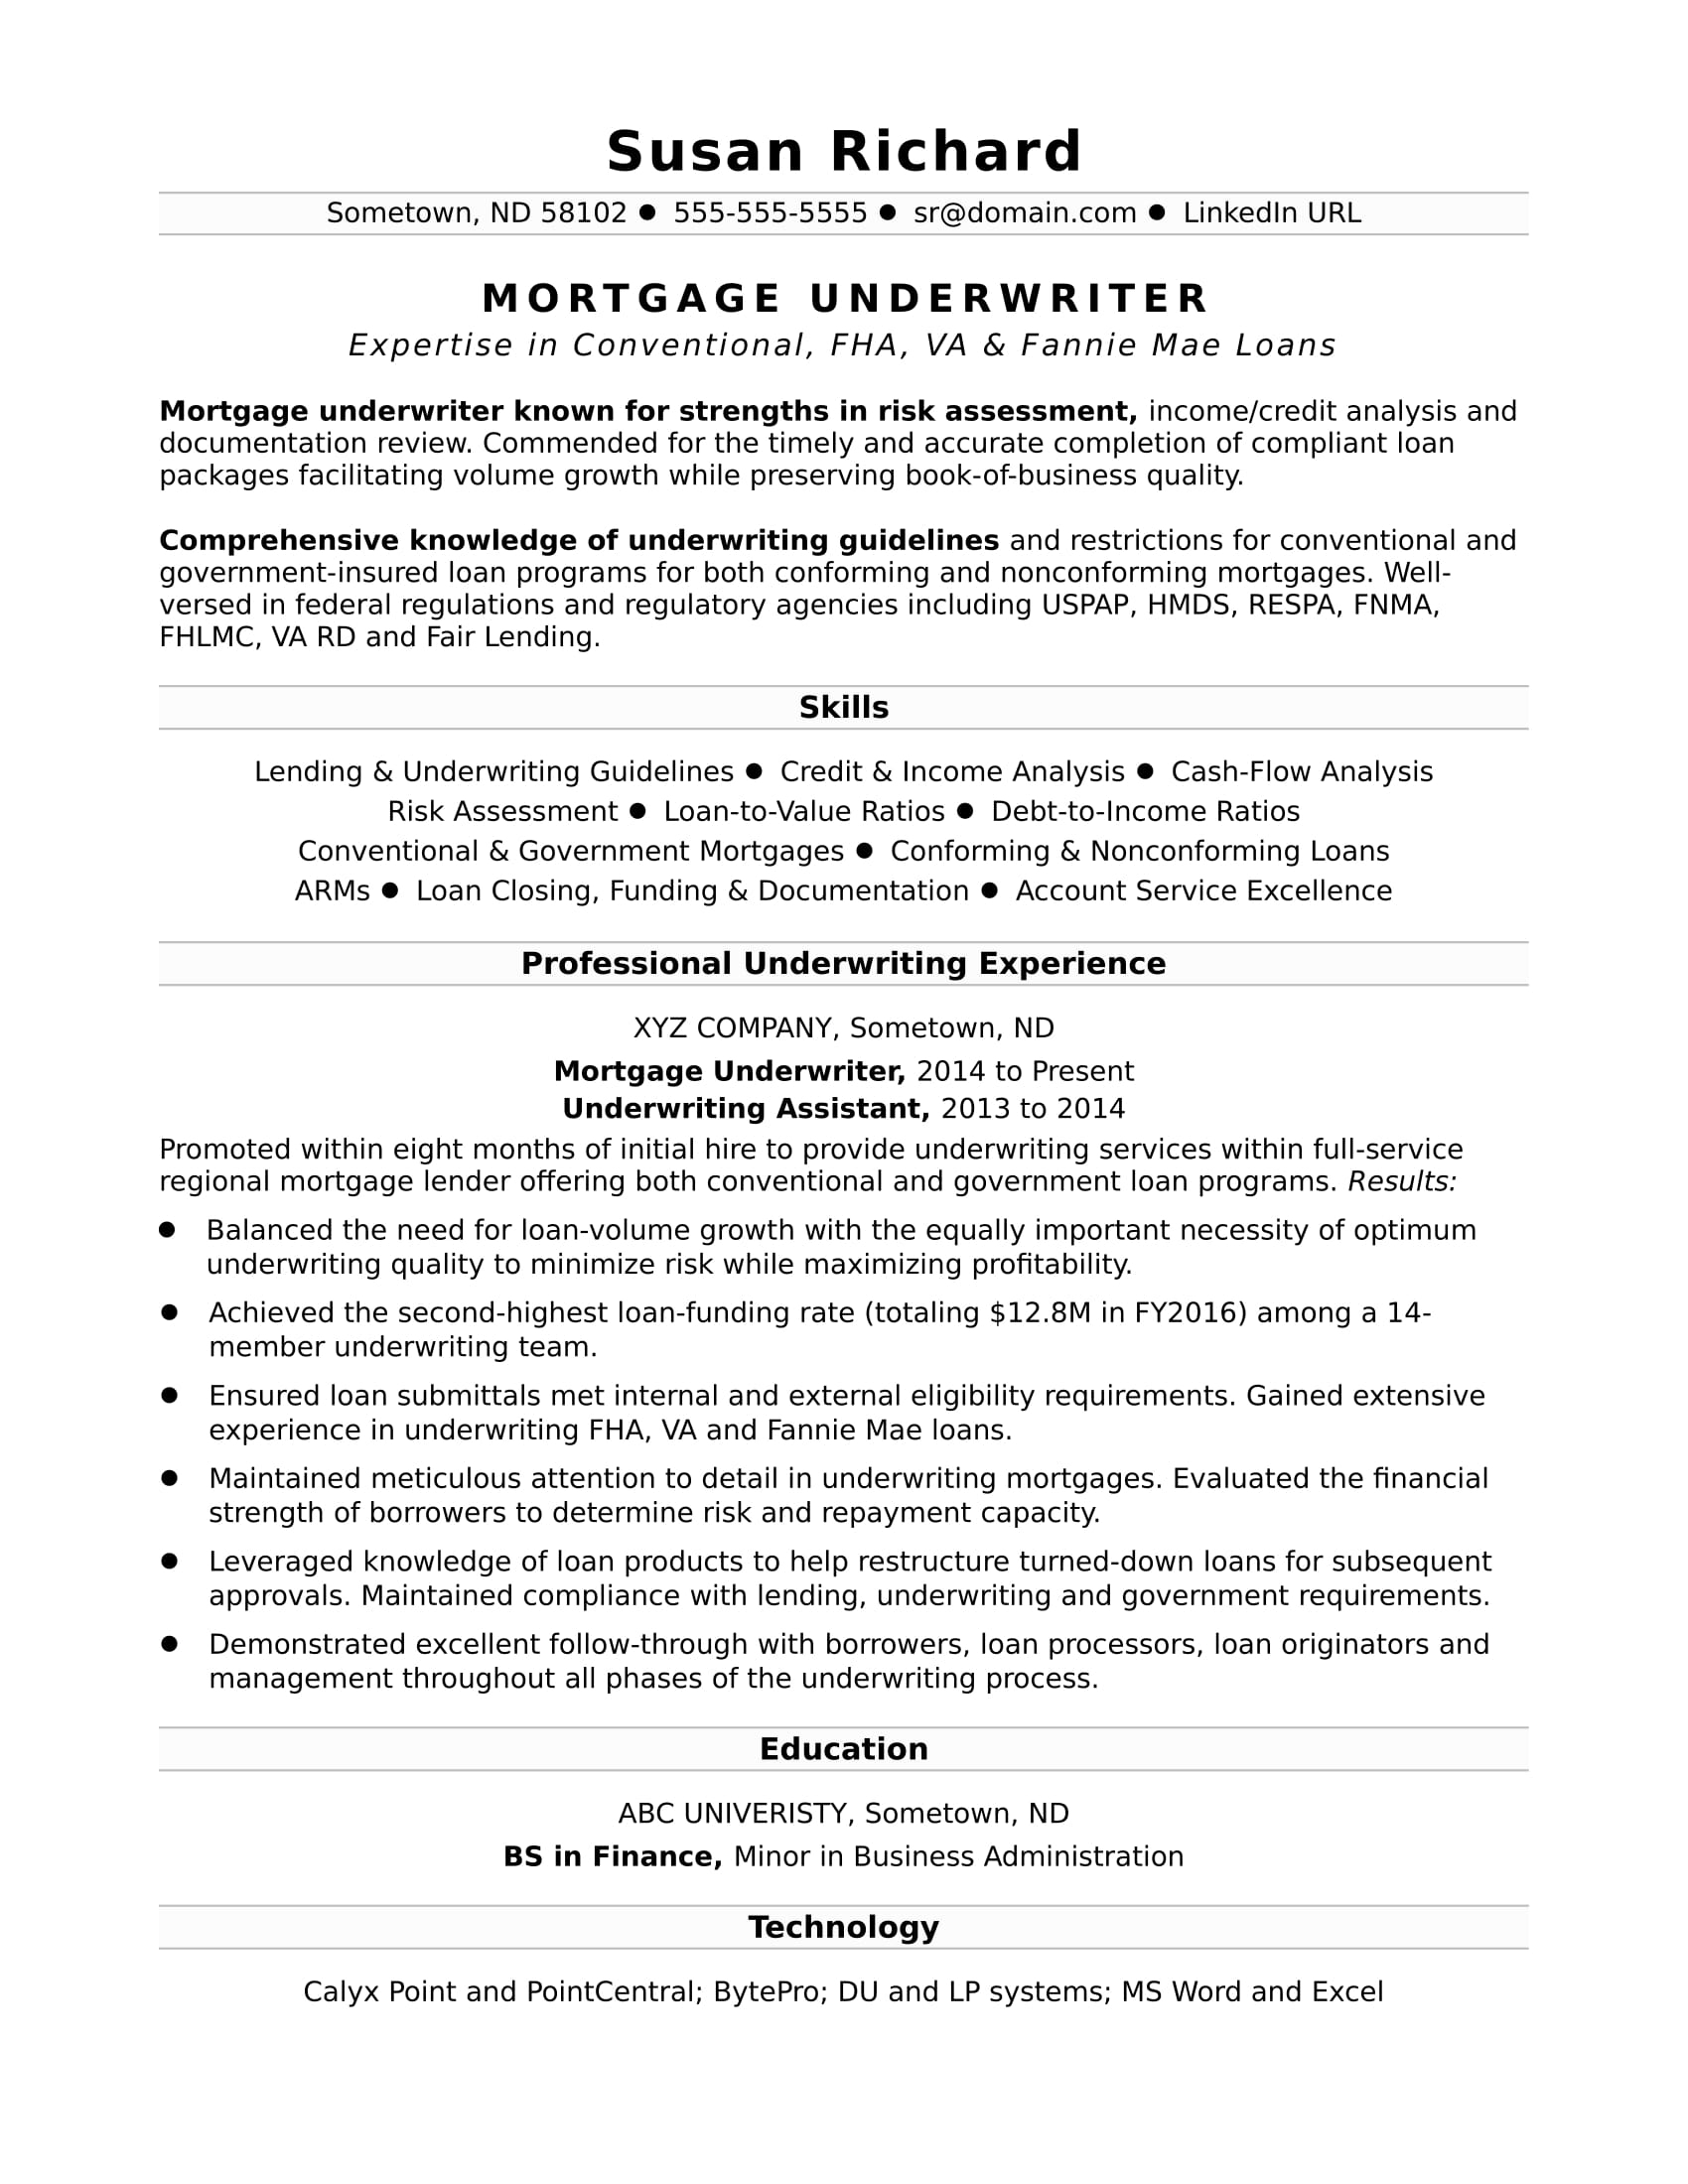 Mortgage Protection Letter Template - Mortgage Underwriter Resume Sample